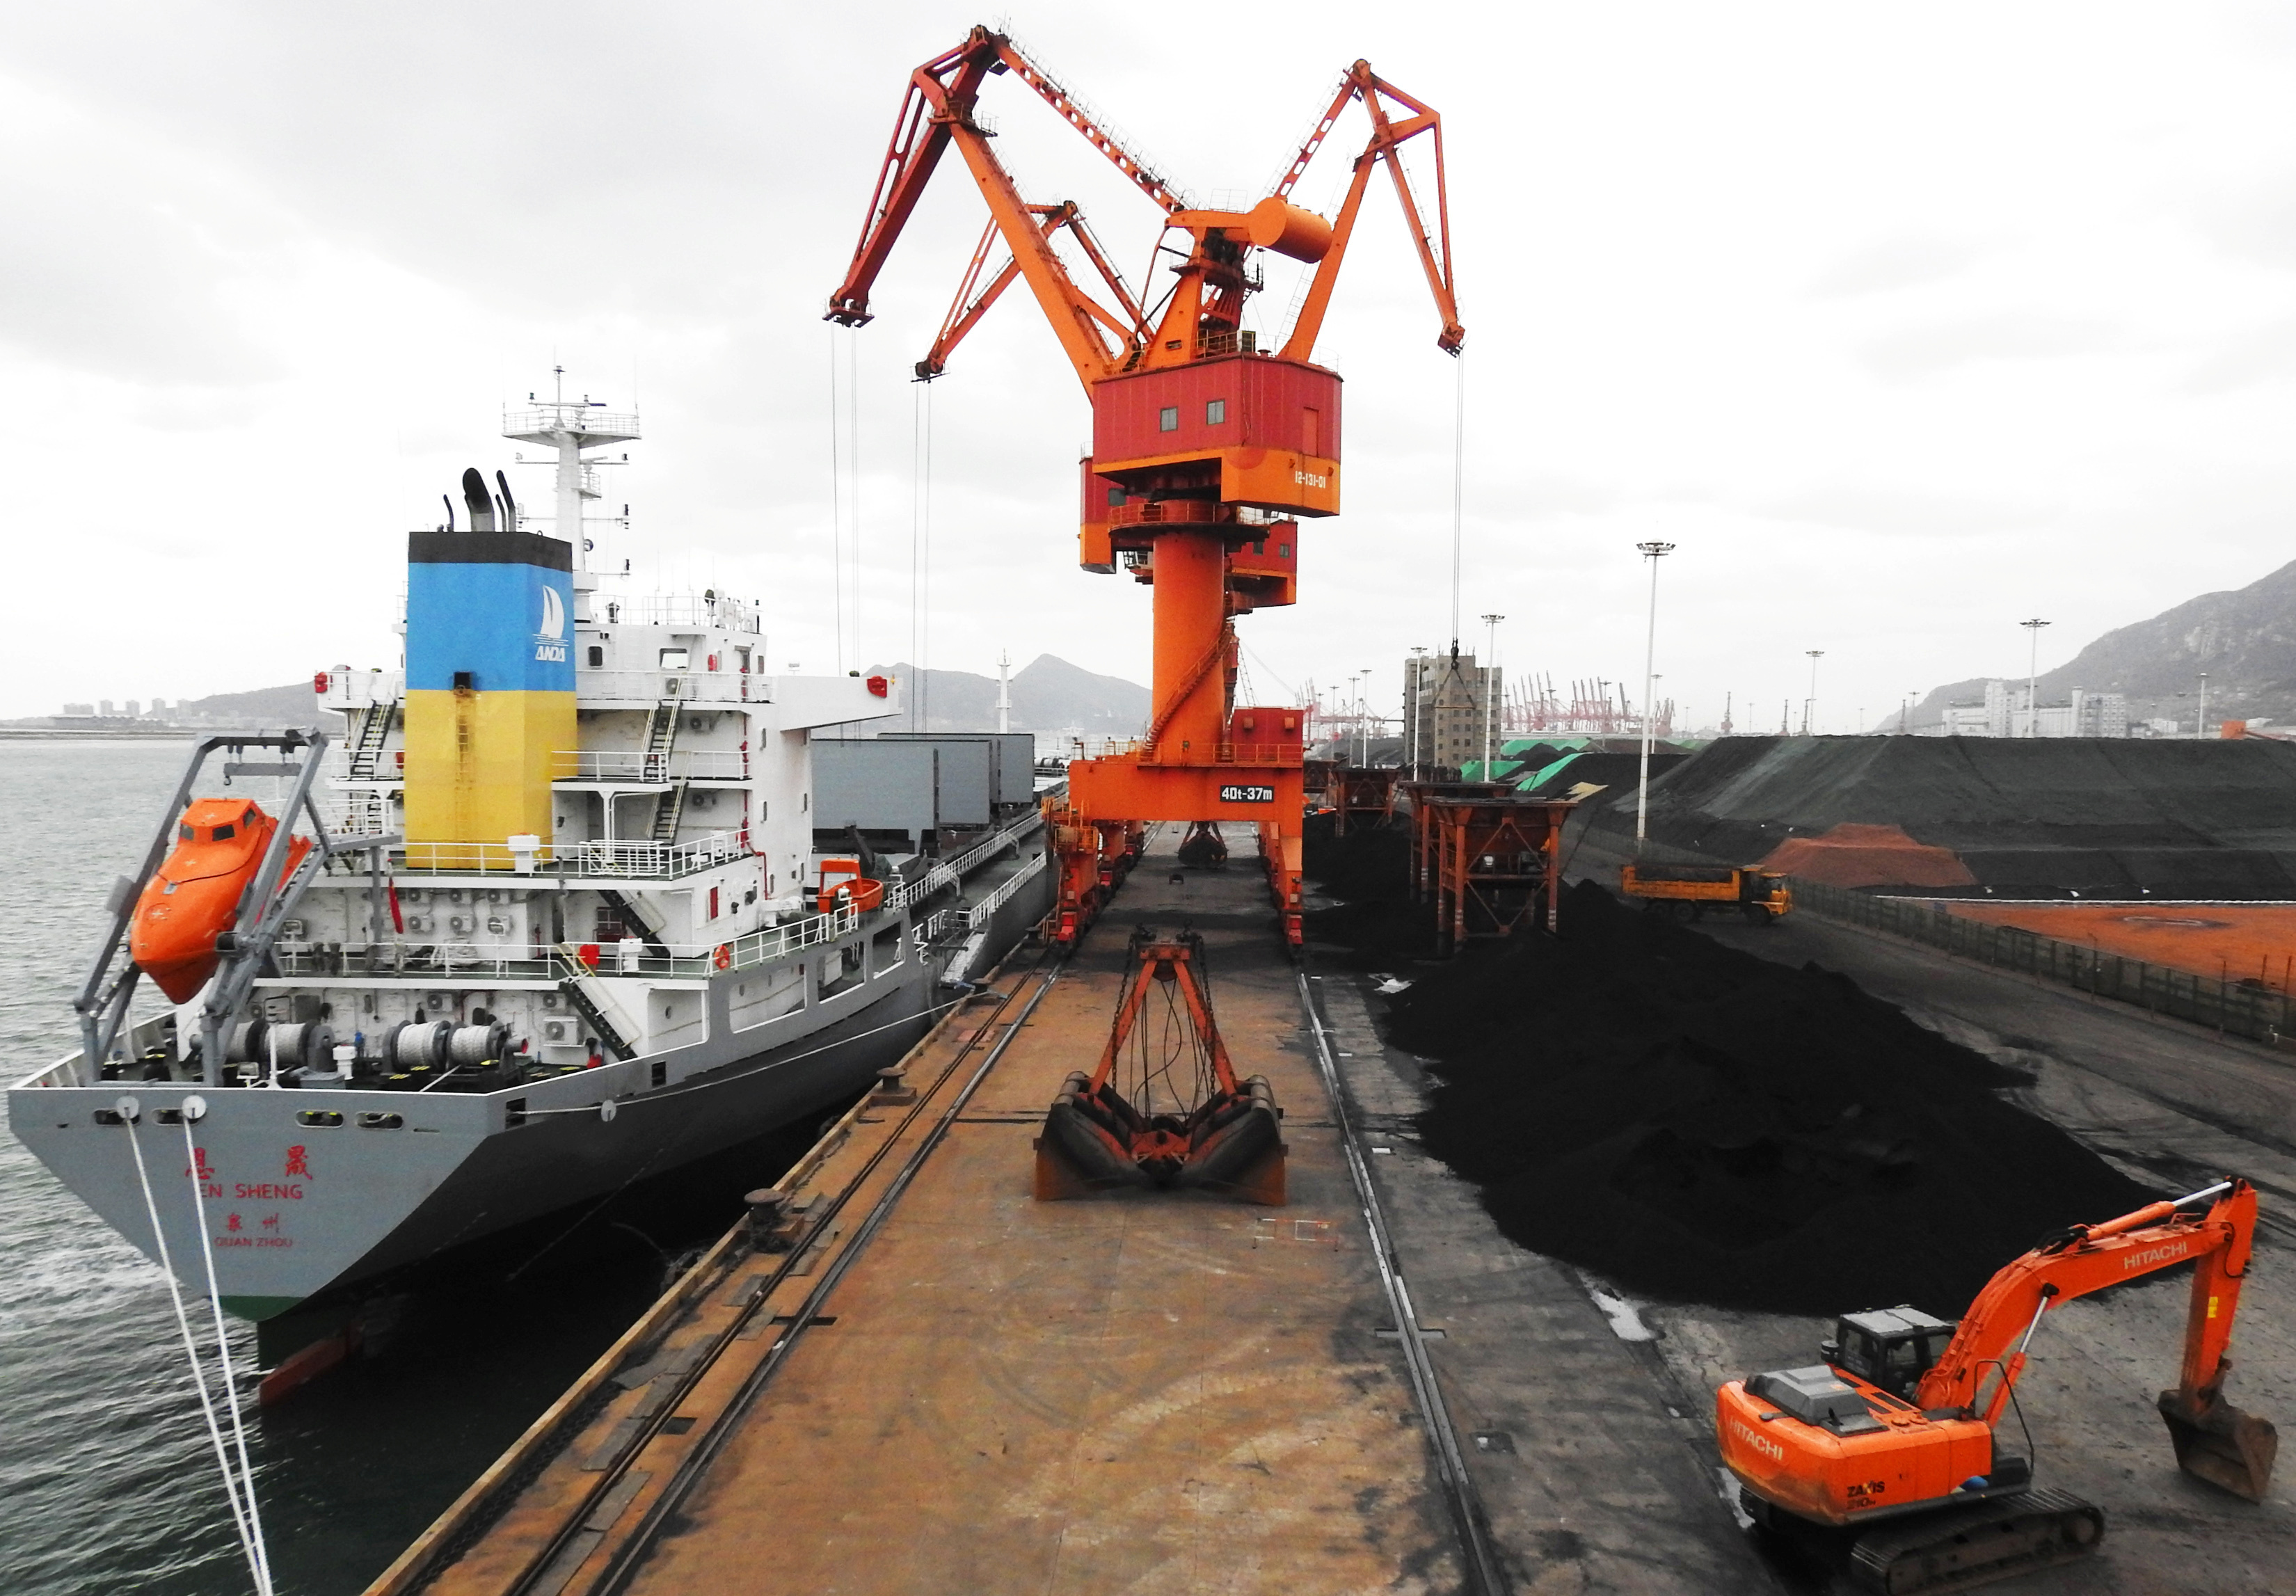 Cranes unload coal from a cargo ship at a port in Lianyungang, Jiangsu province, China December 6, 2018. REUTERS/Stringer/File Photo